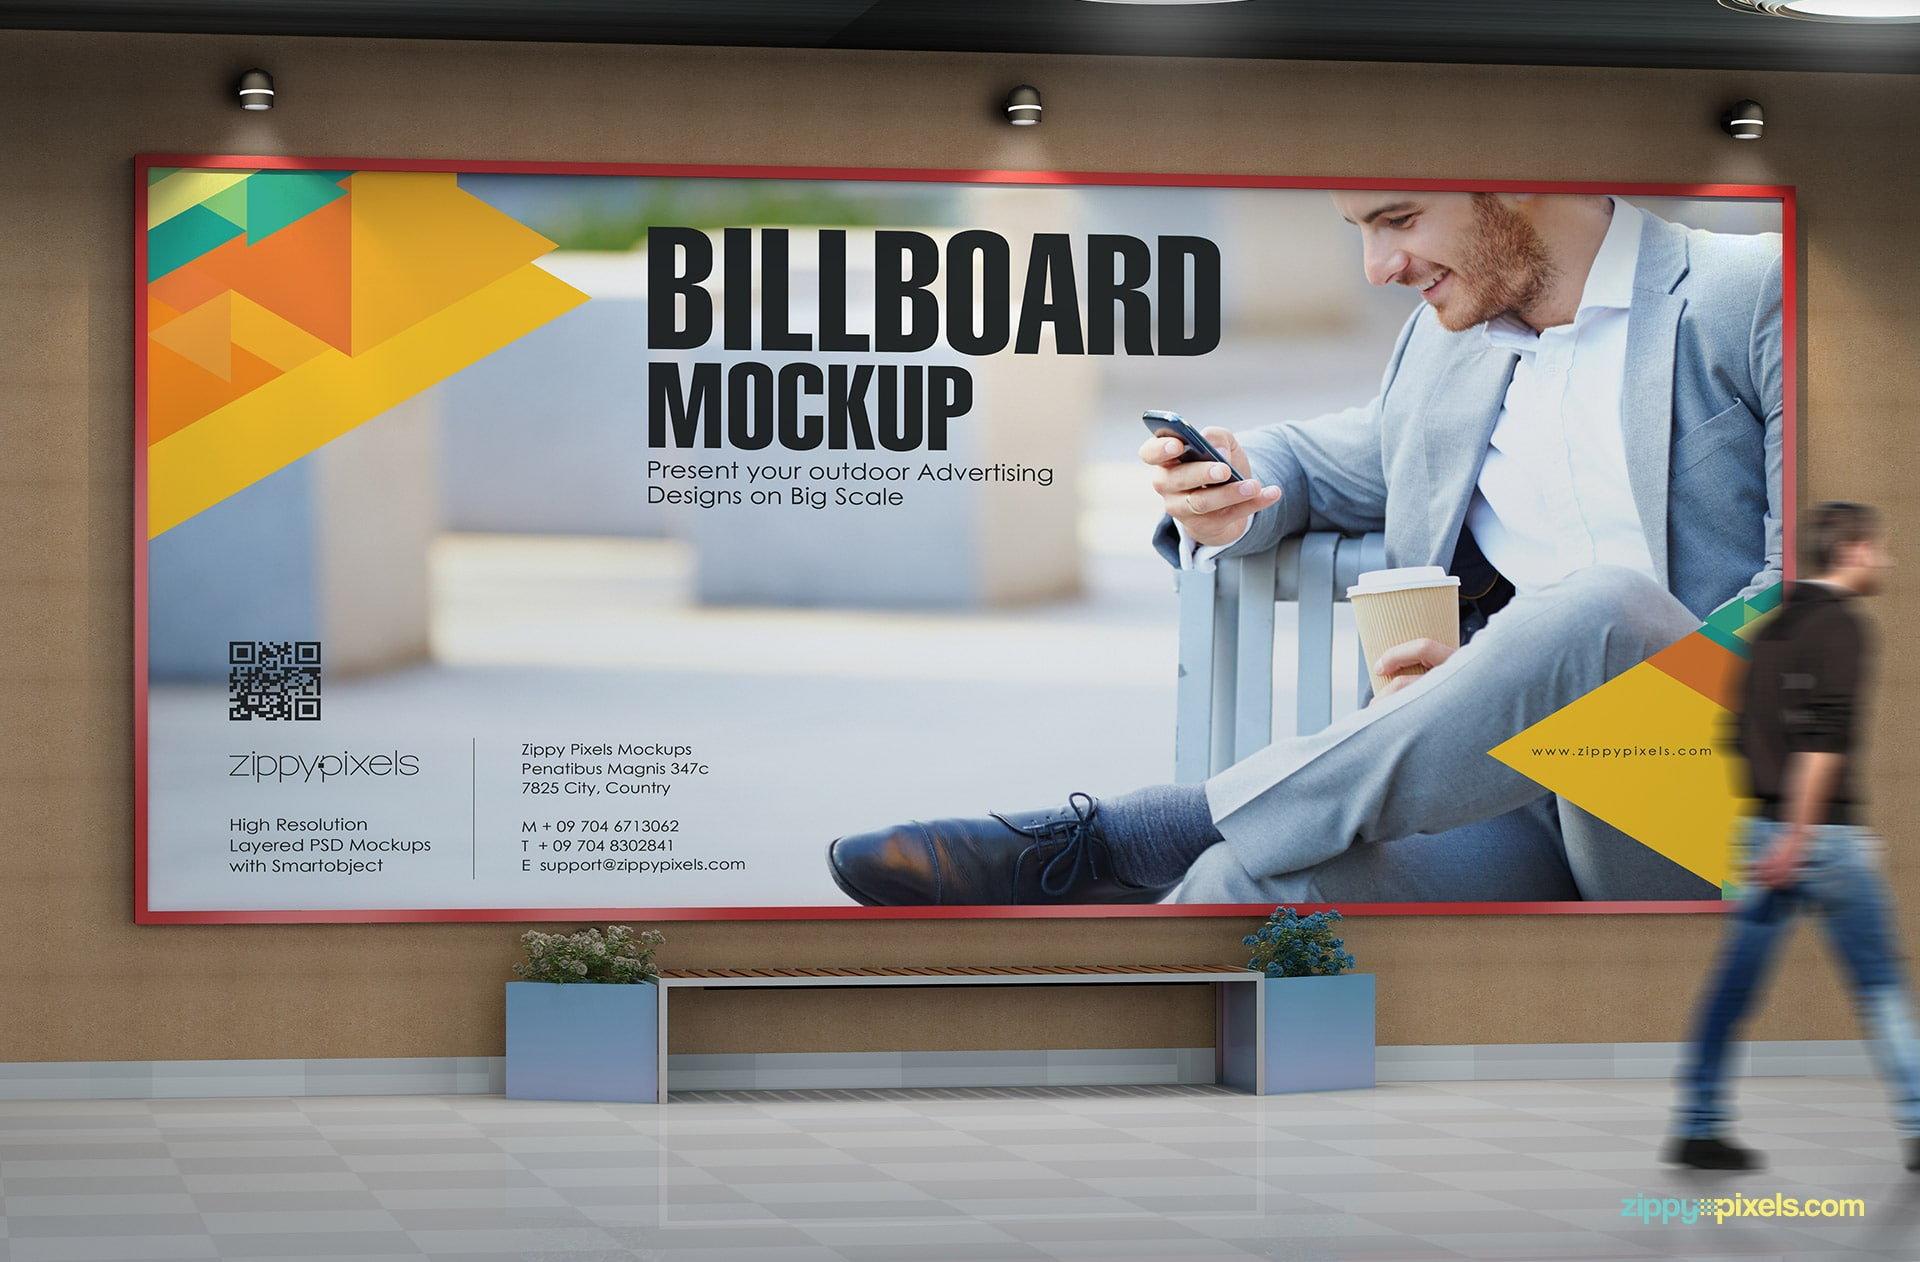 Subway billboard advertising mockup to bring your designs to life